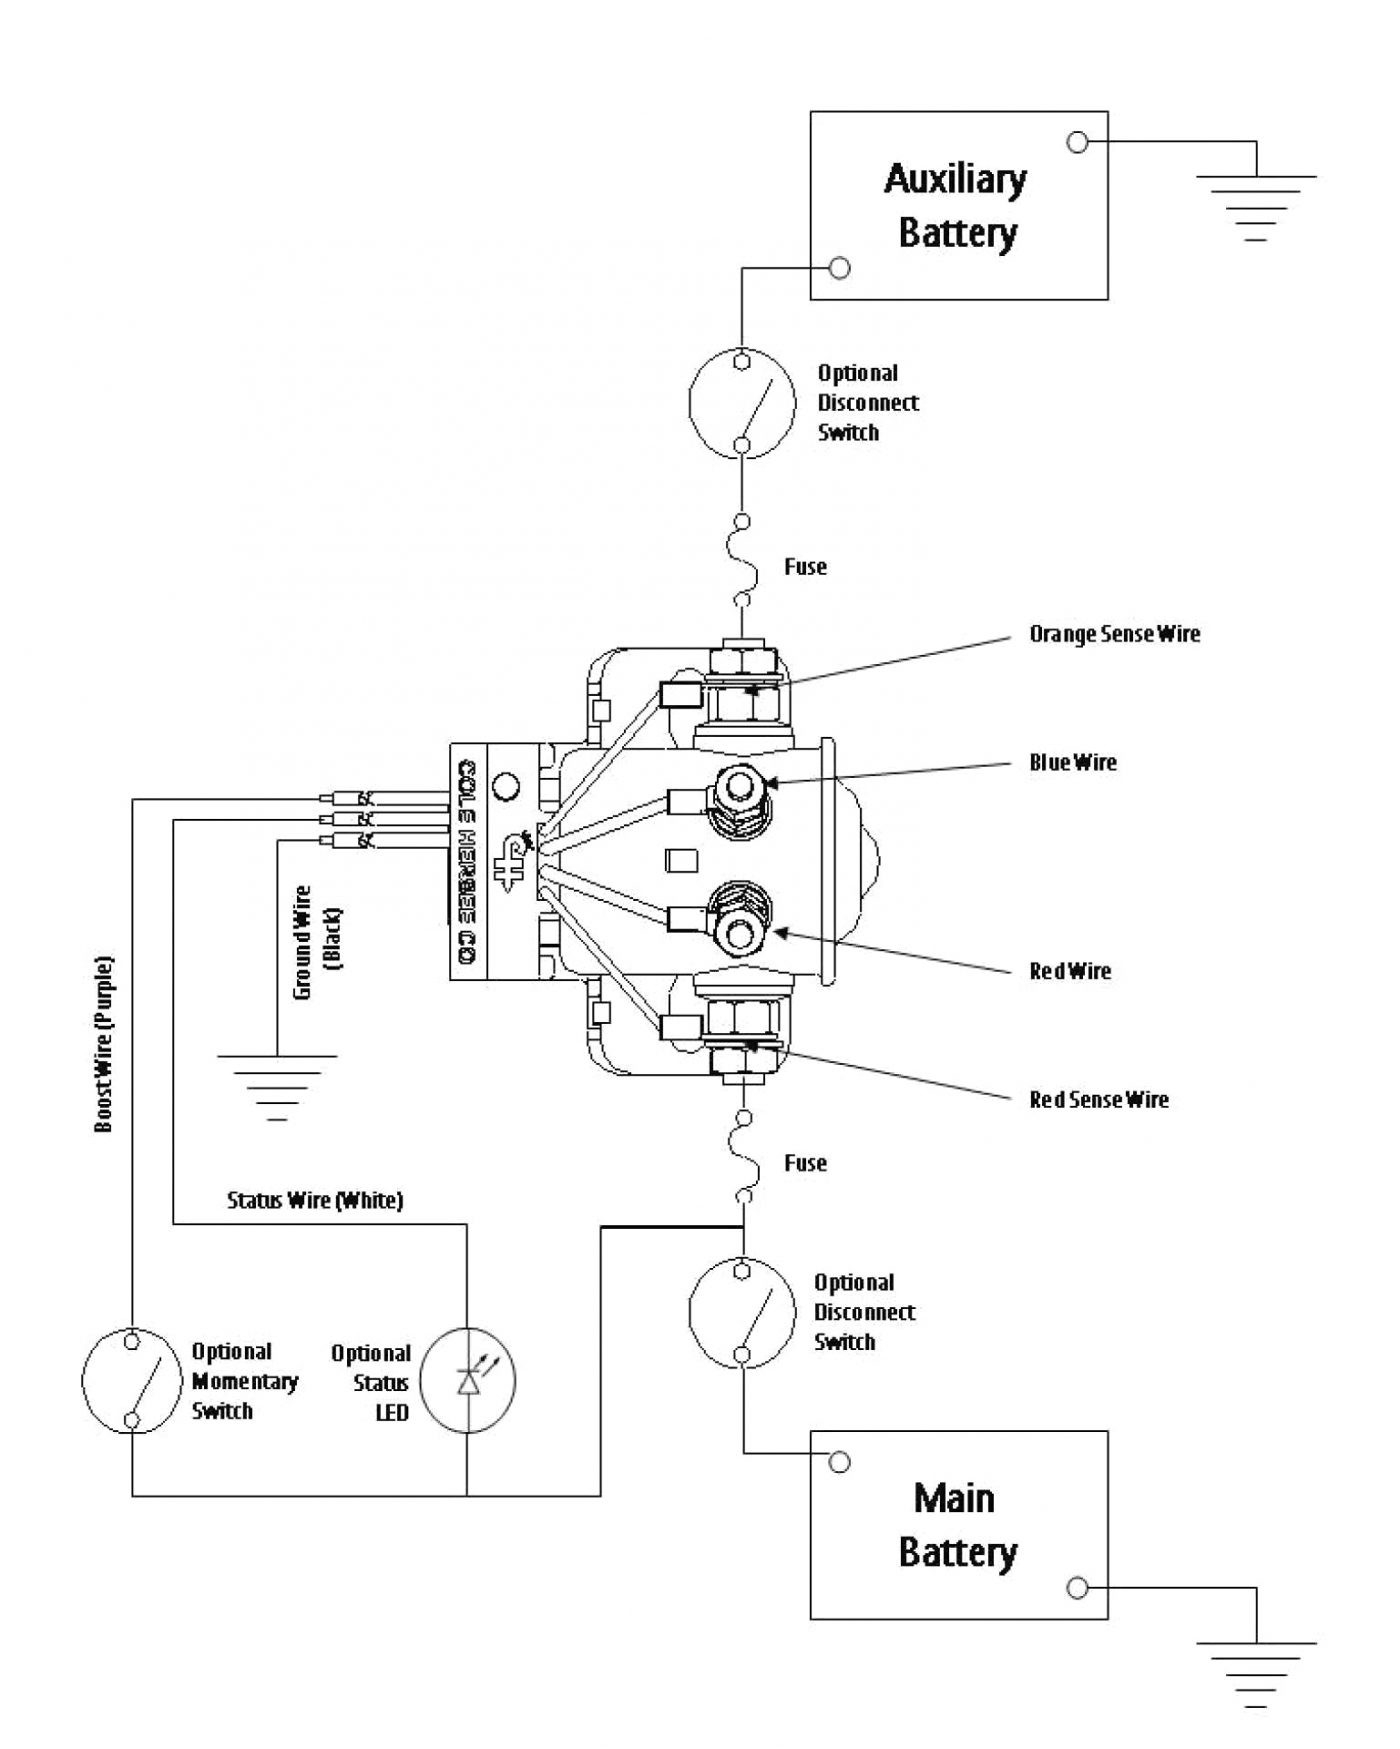 hight resolution of bep marine battery switch wiring diagram wiring diagram in addition rv battery isolator diagram wiring